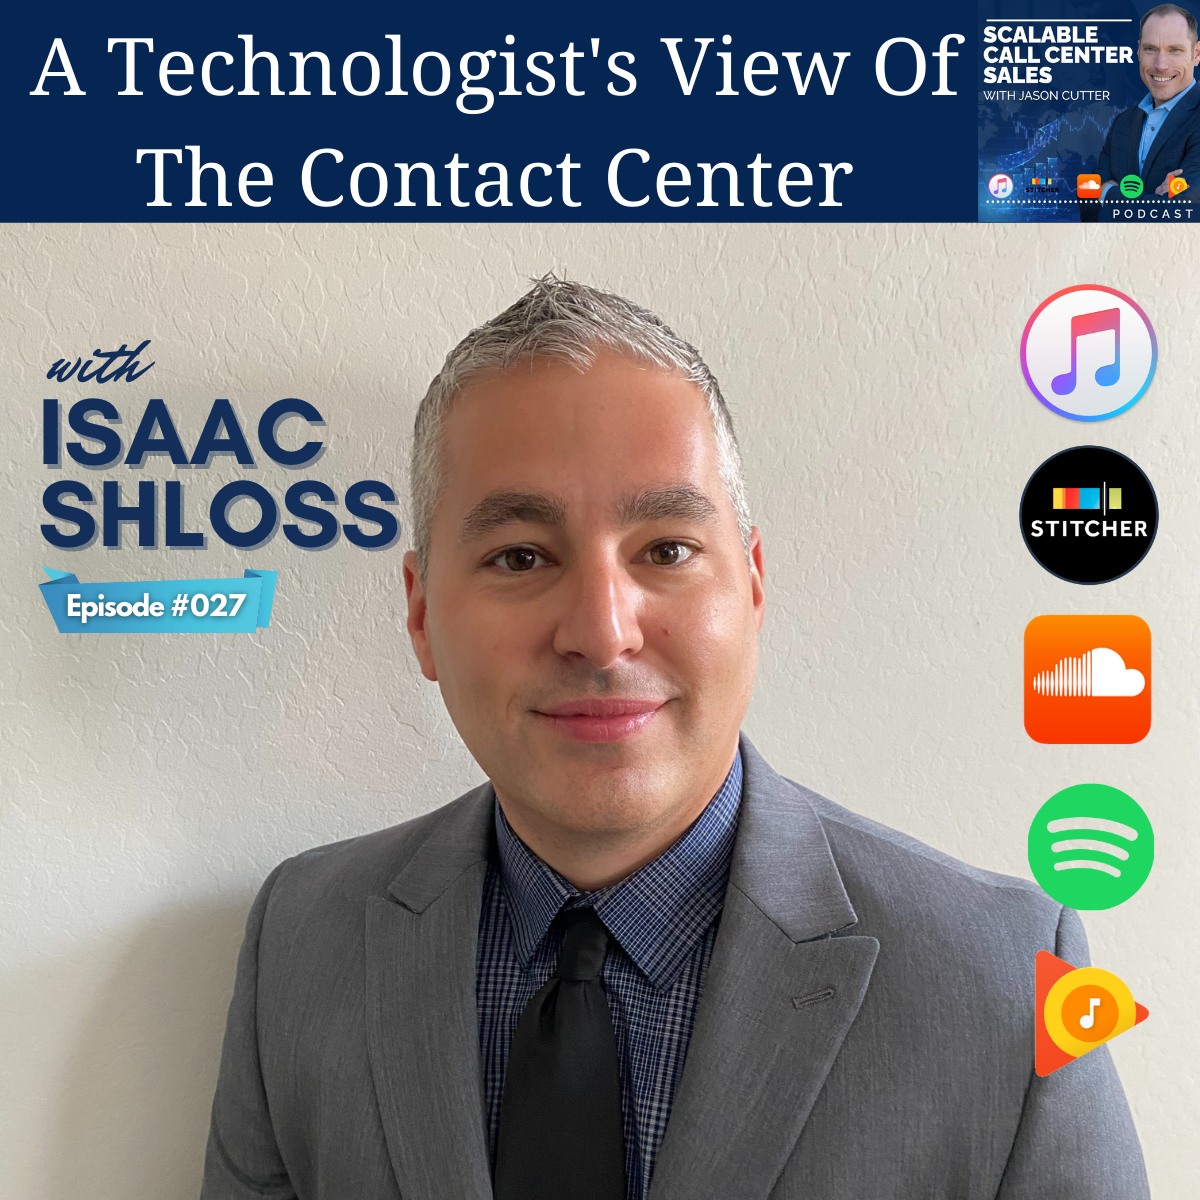 You are currently viewing [027] A Technologist's View Of The Contact Center, with Isaac Shloss from GrupoNGN